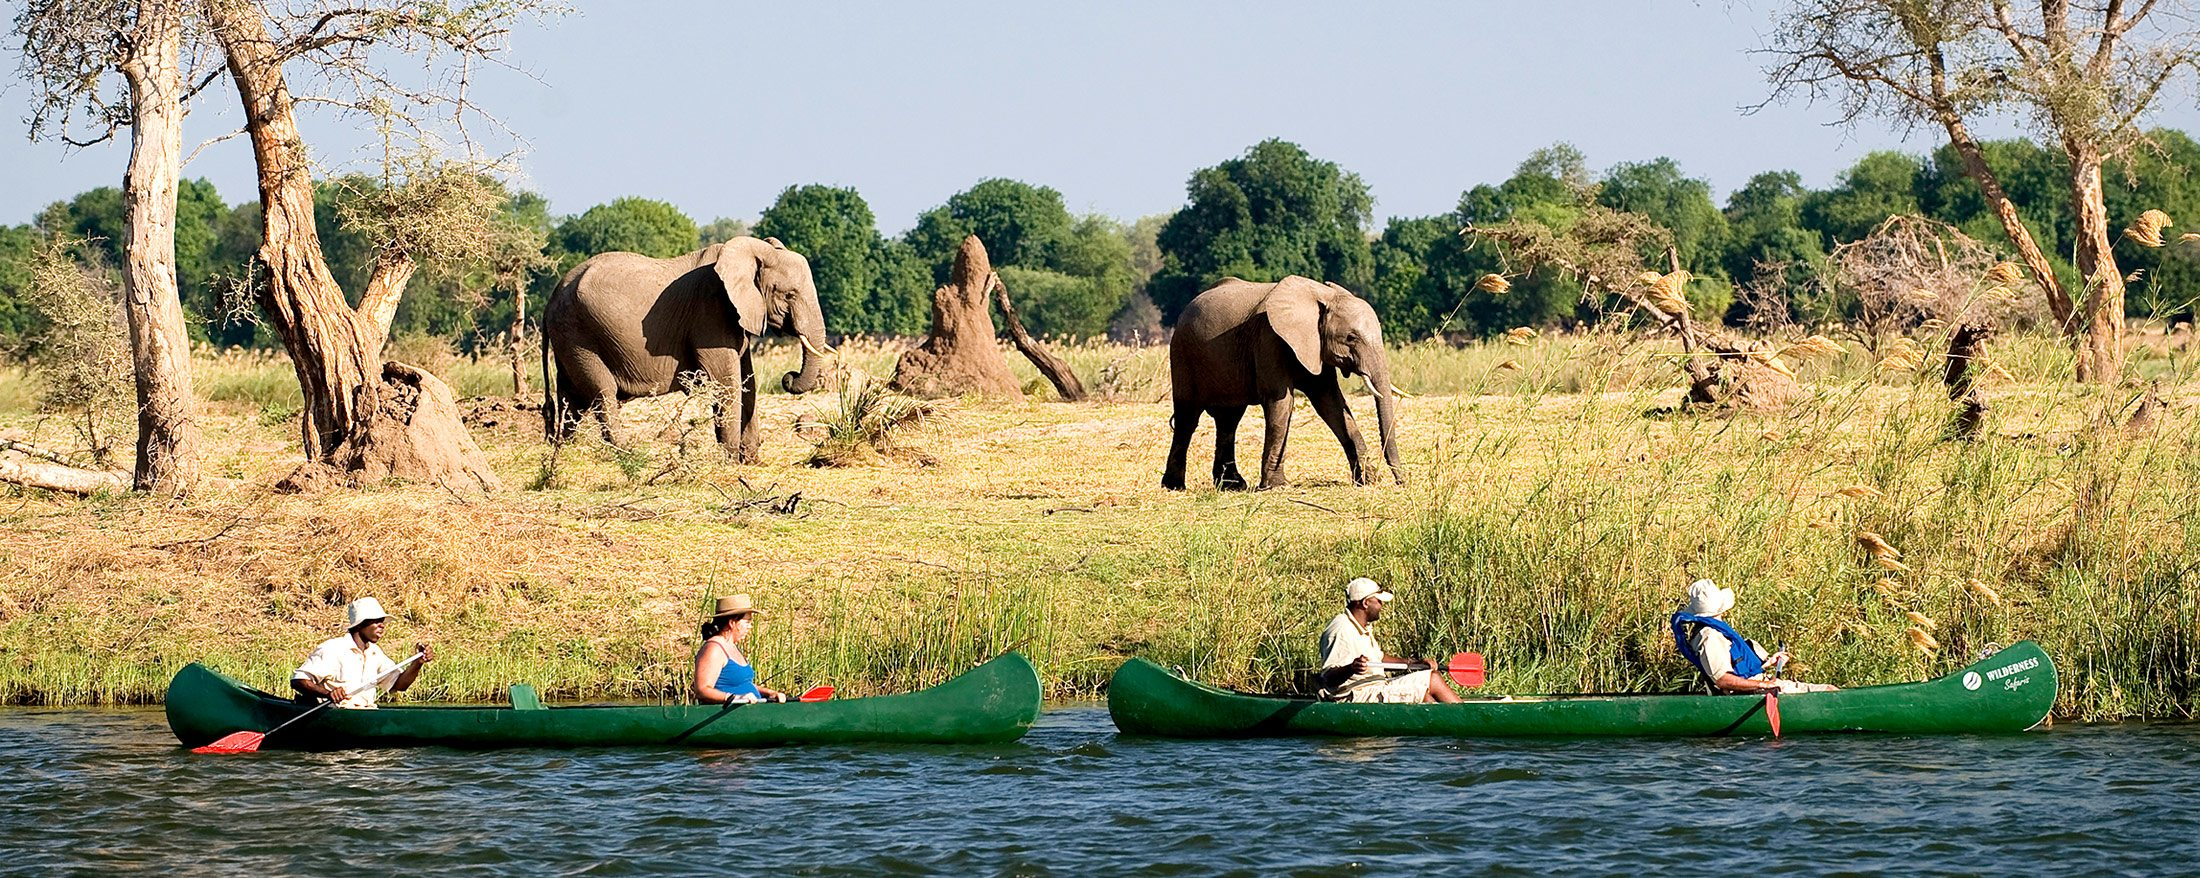 Zambezi Canoe Safari | Drift along the Zambezi shore and see what wildlife you can spot on a canoe safari.